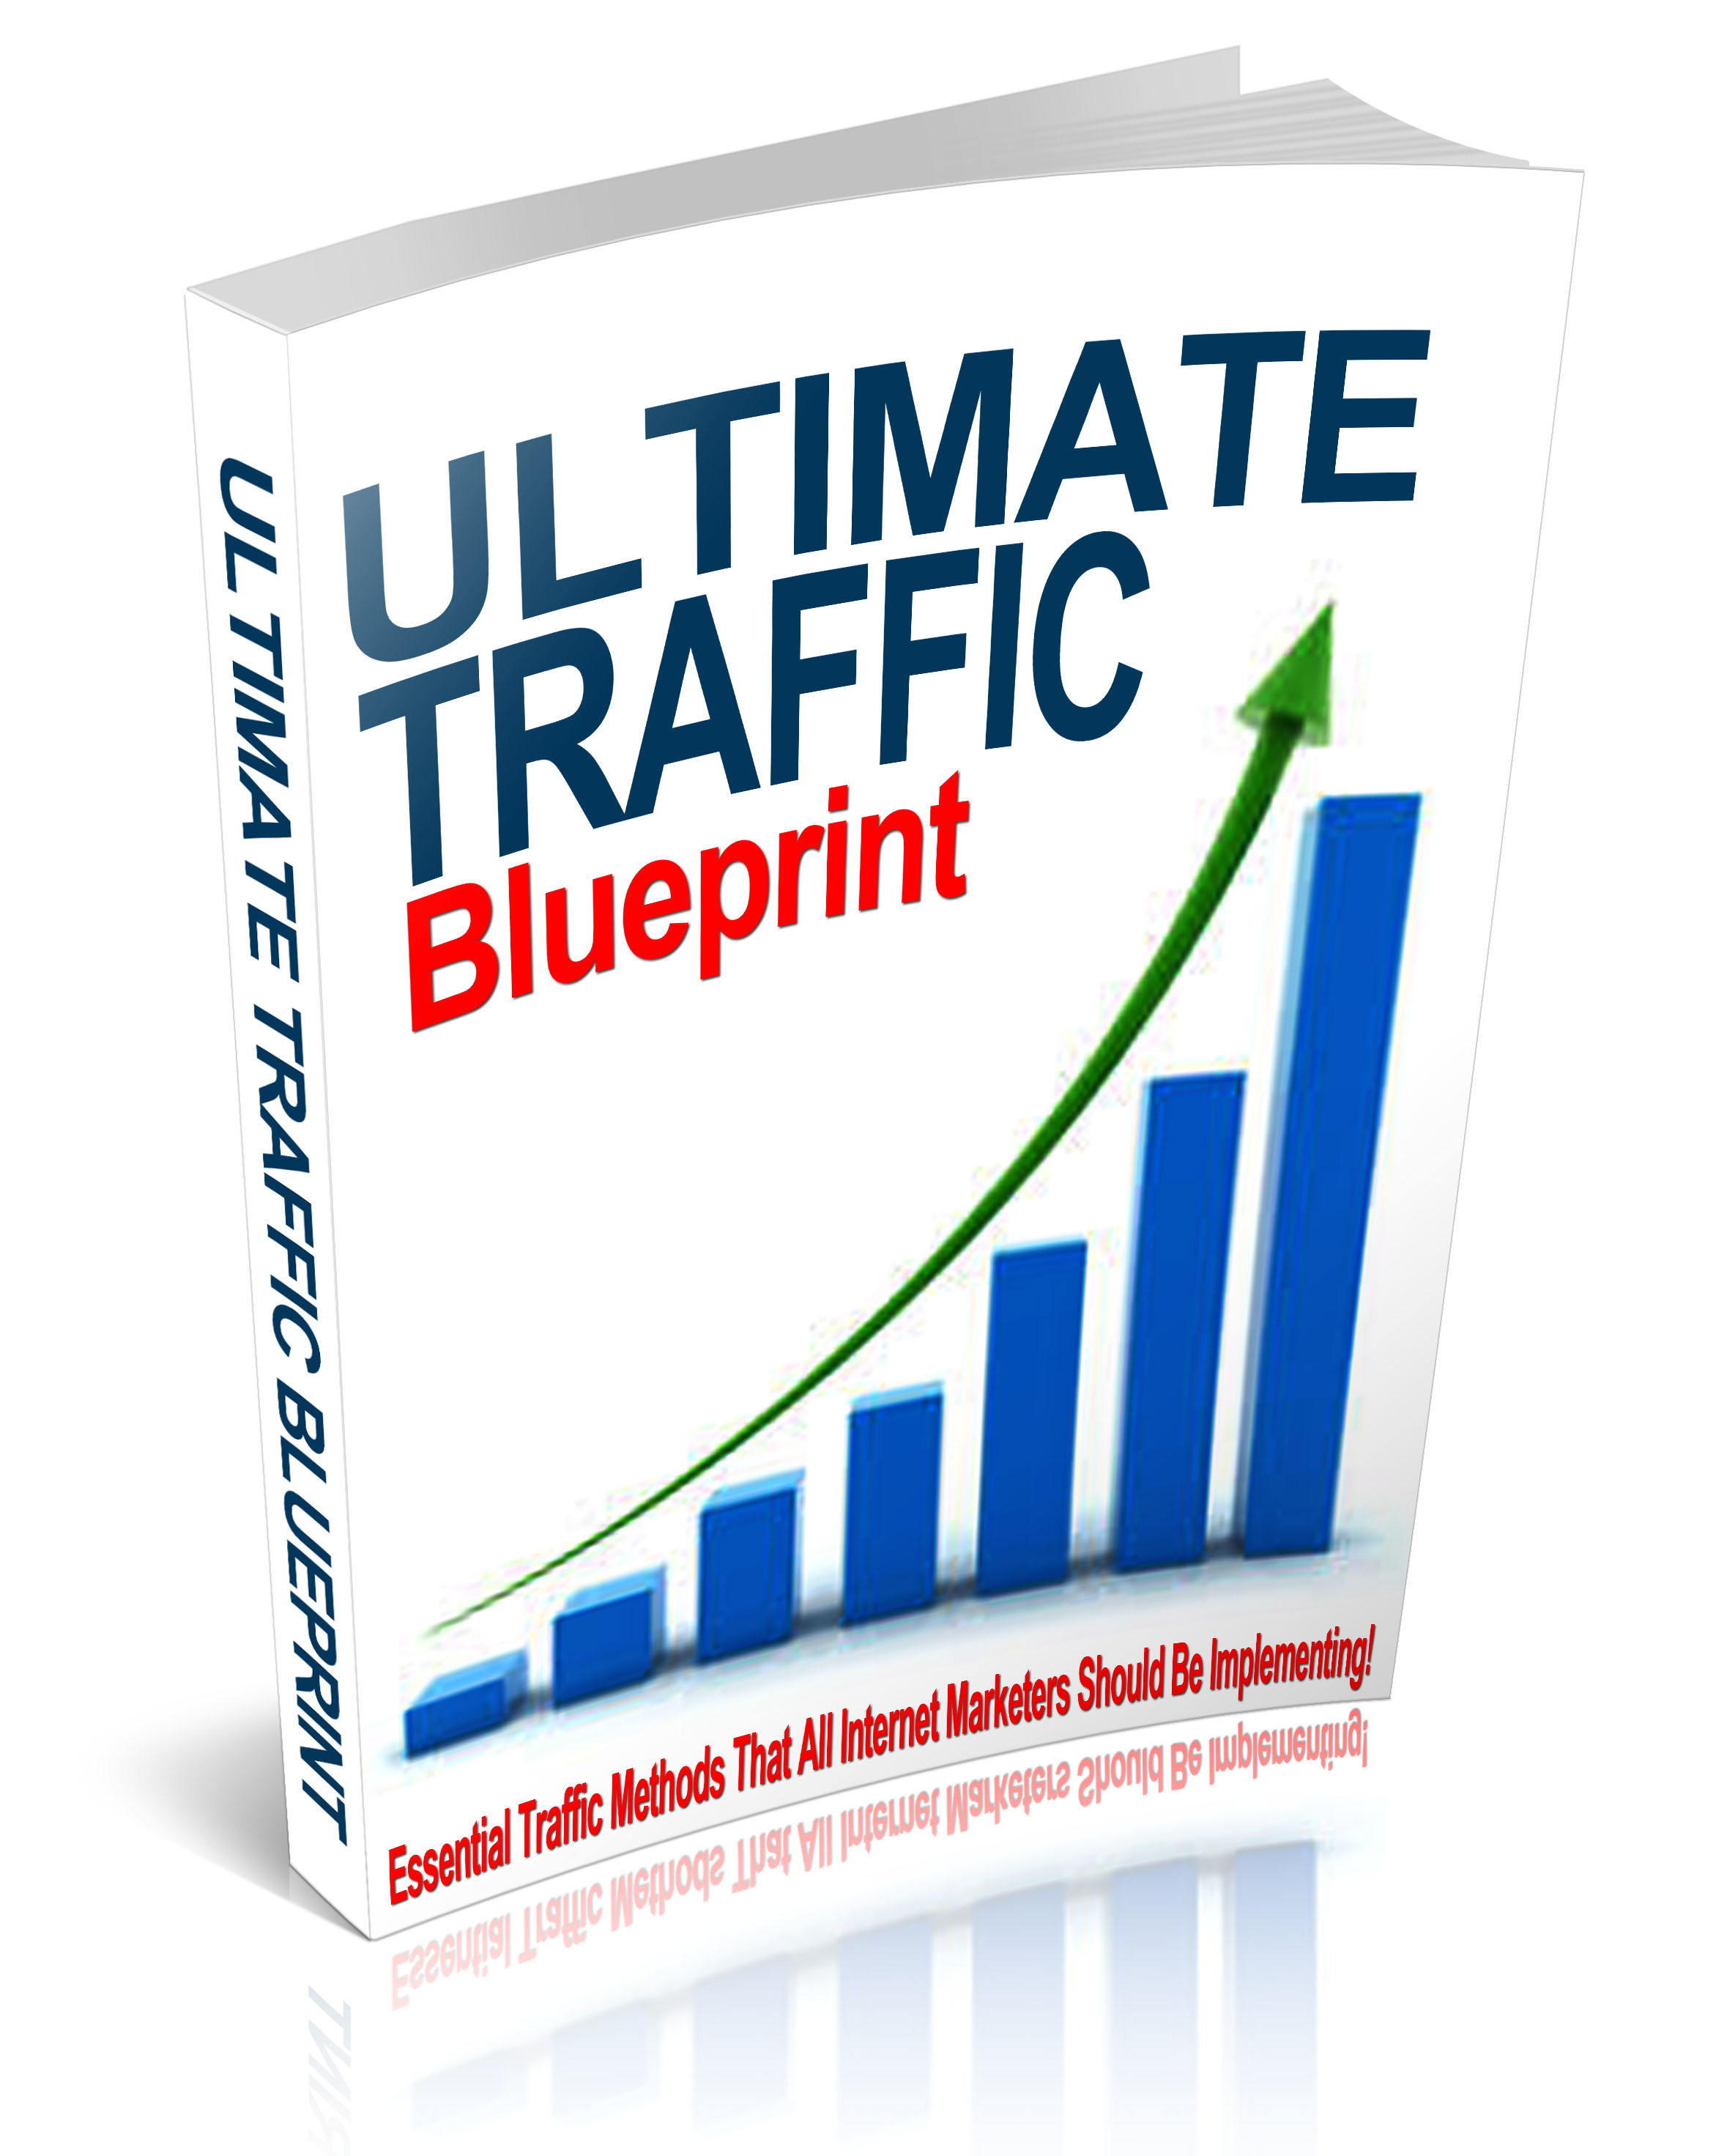 send to you Ebook Ultimate Traffic Blueprint (with resell rights)